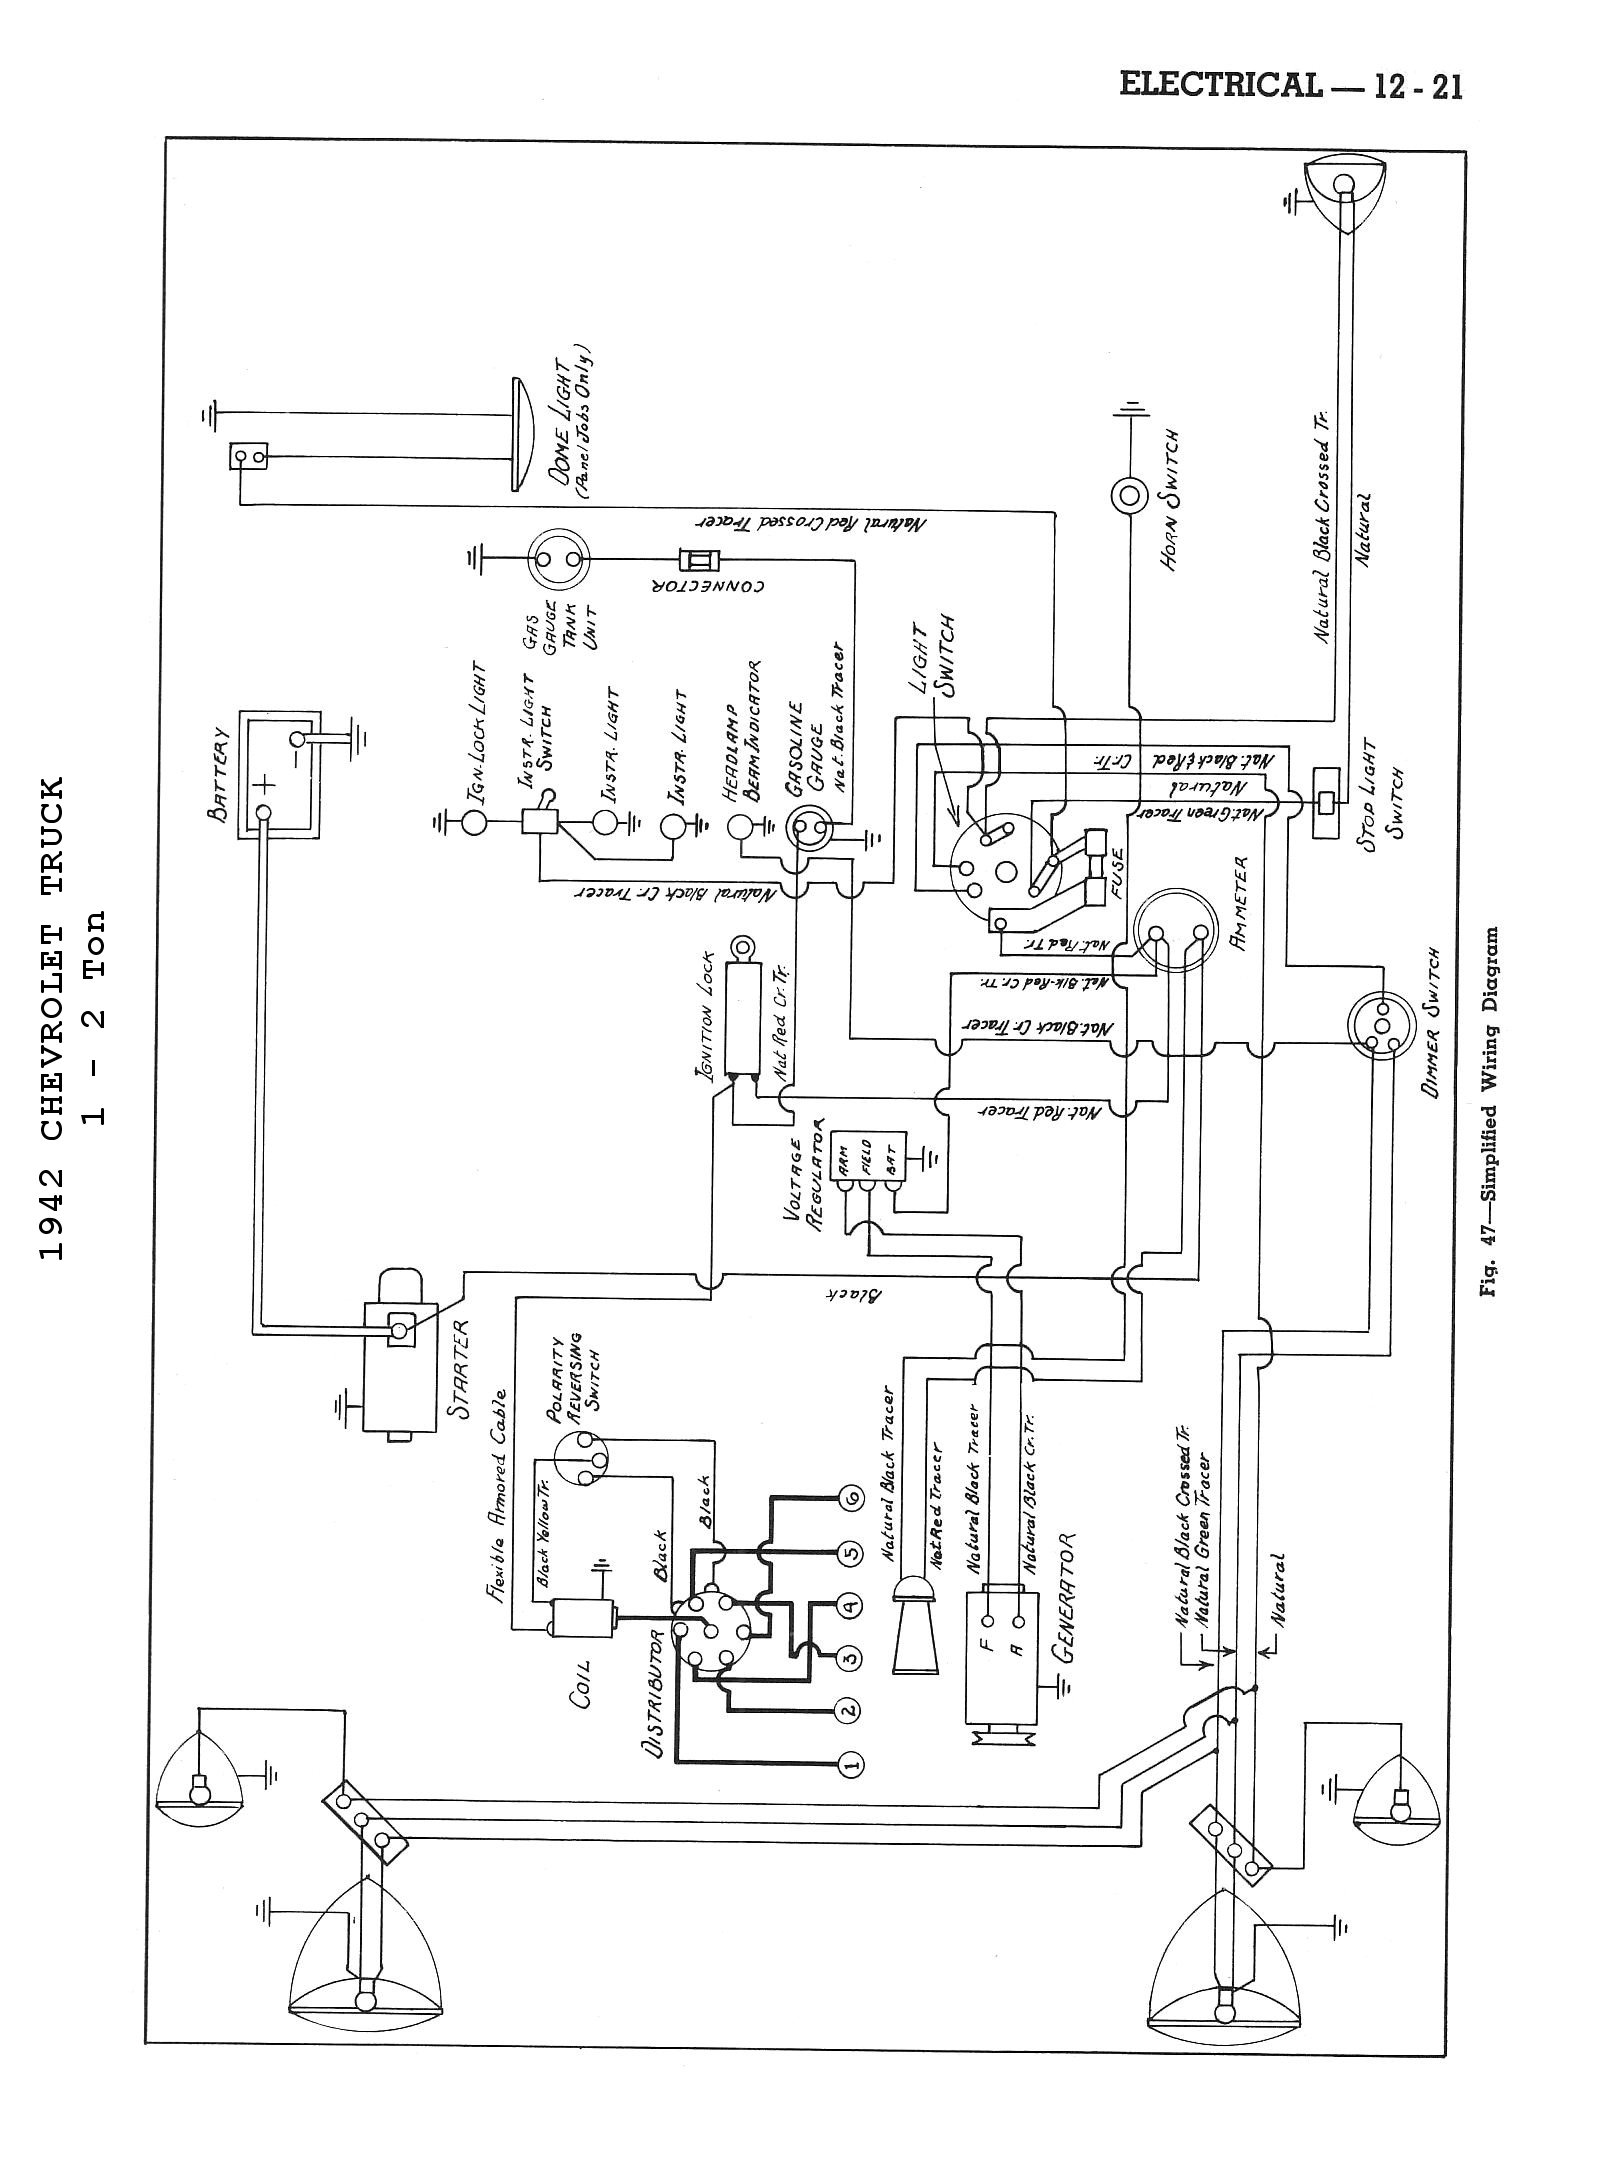 Astonishing Chevy Wiring Diagrams Monang Recoveryedb Wiring Schematic Monangrecoveryedborg